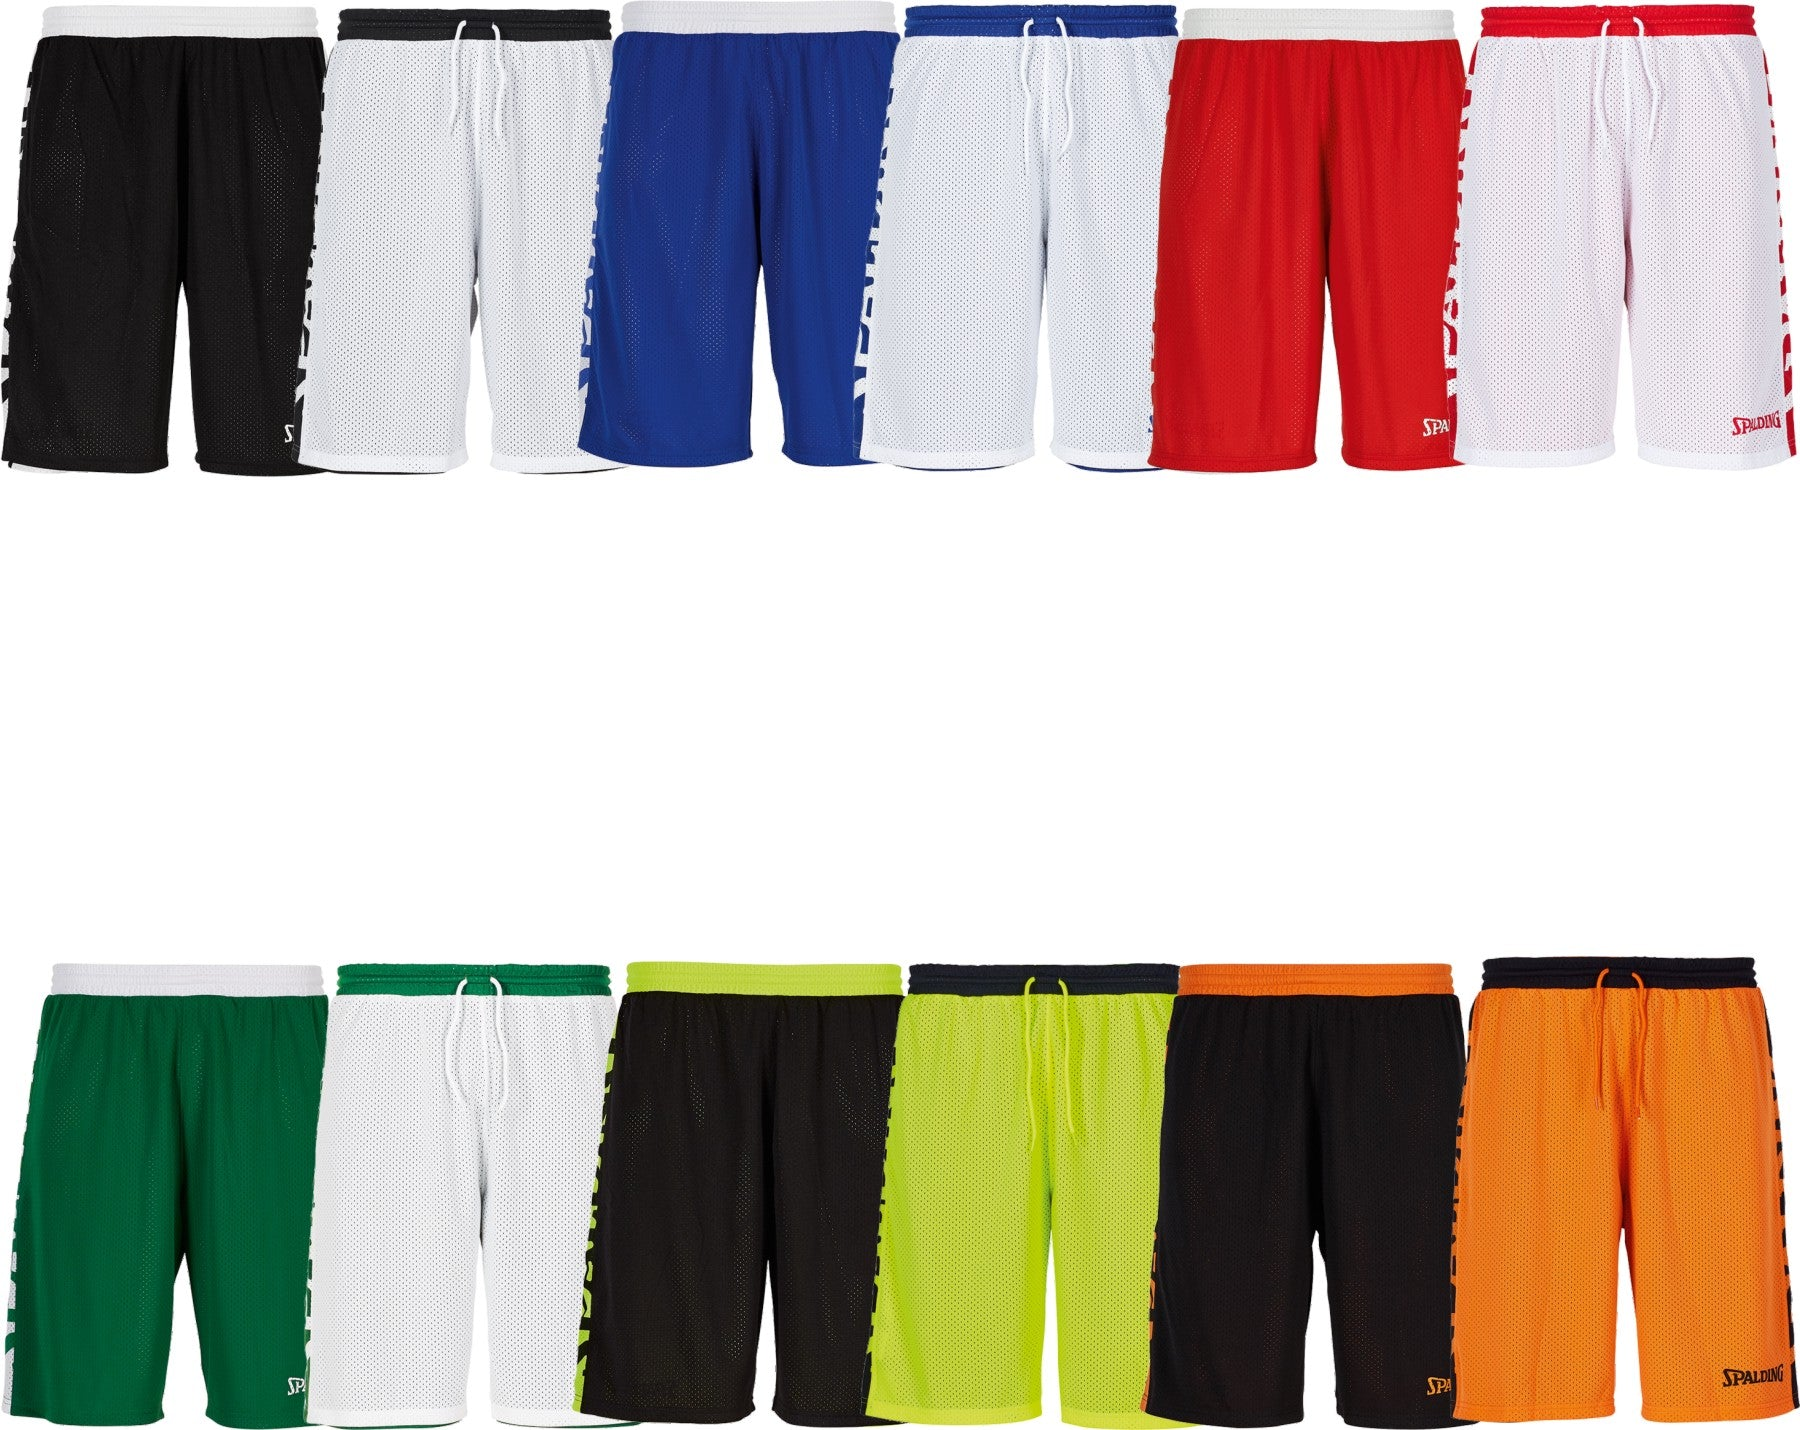 Teamwear - Spalding Essential Reversible Shorts (v2019)